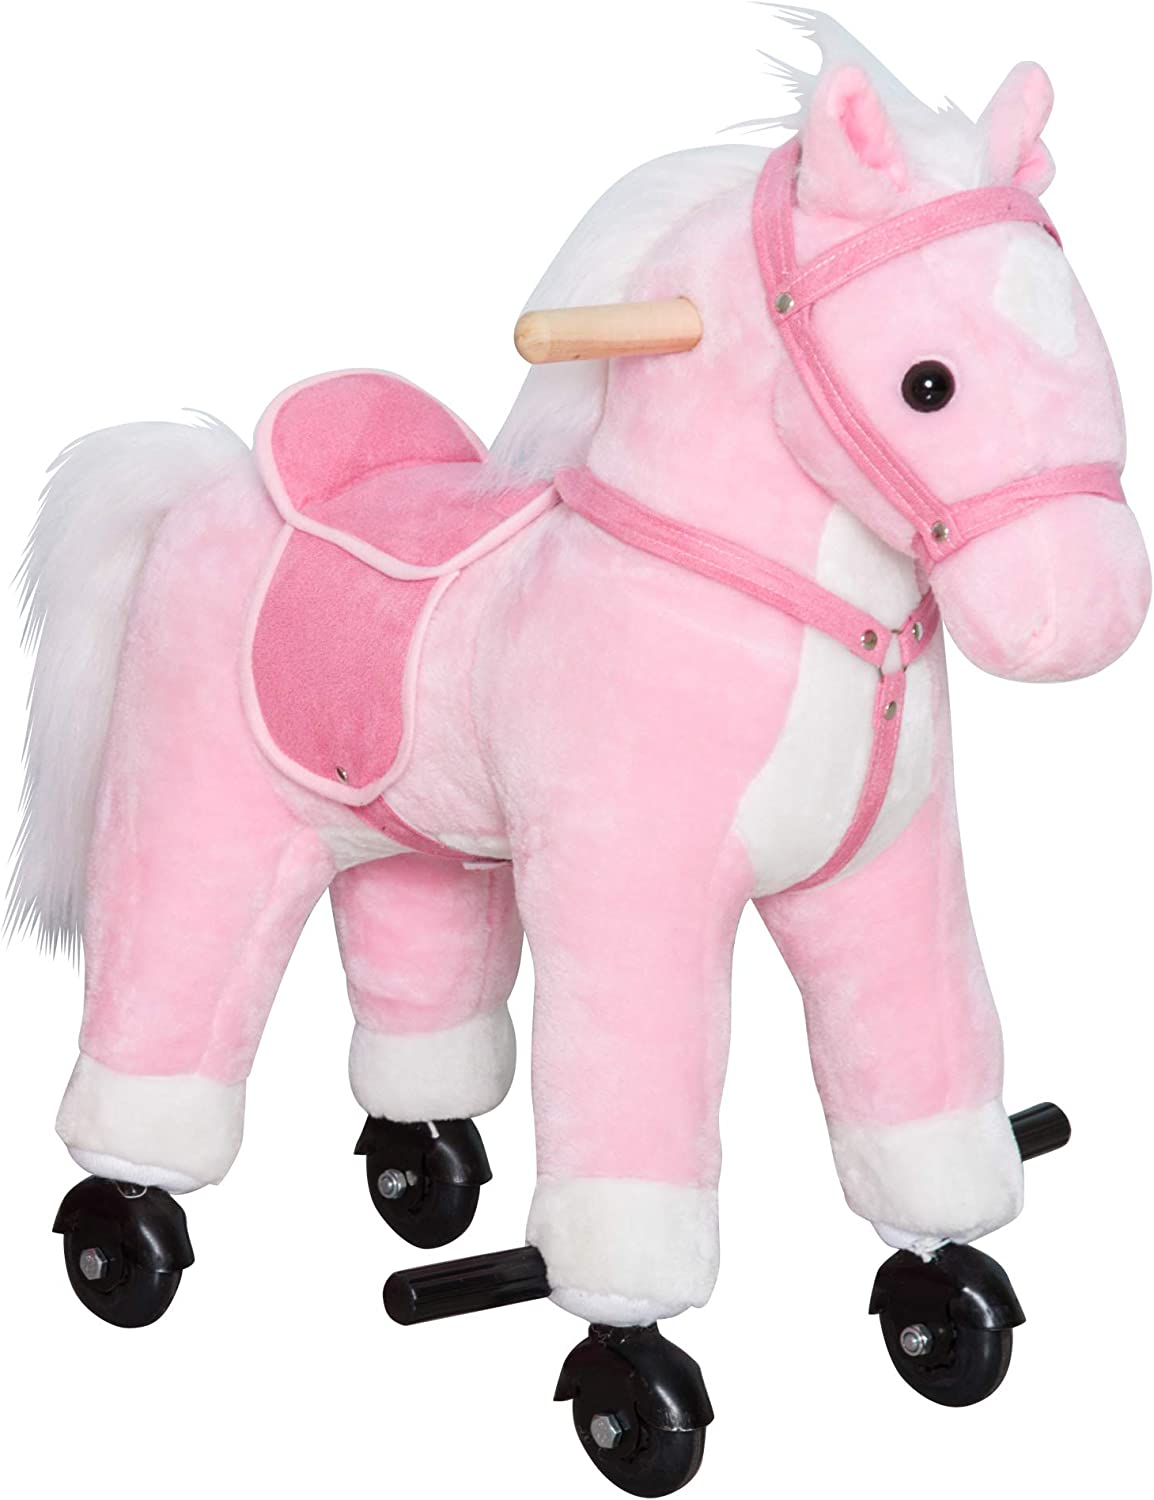 """7/"""" Musical Galloping Action Sound Western Horses Kids Toys Random Color 1PC"""